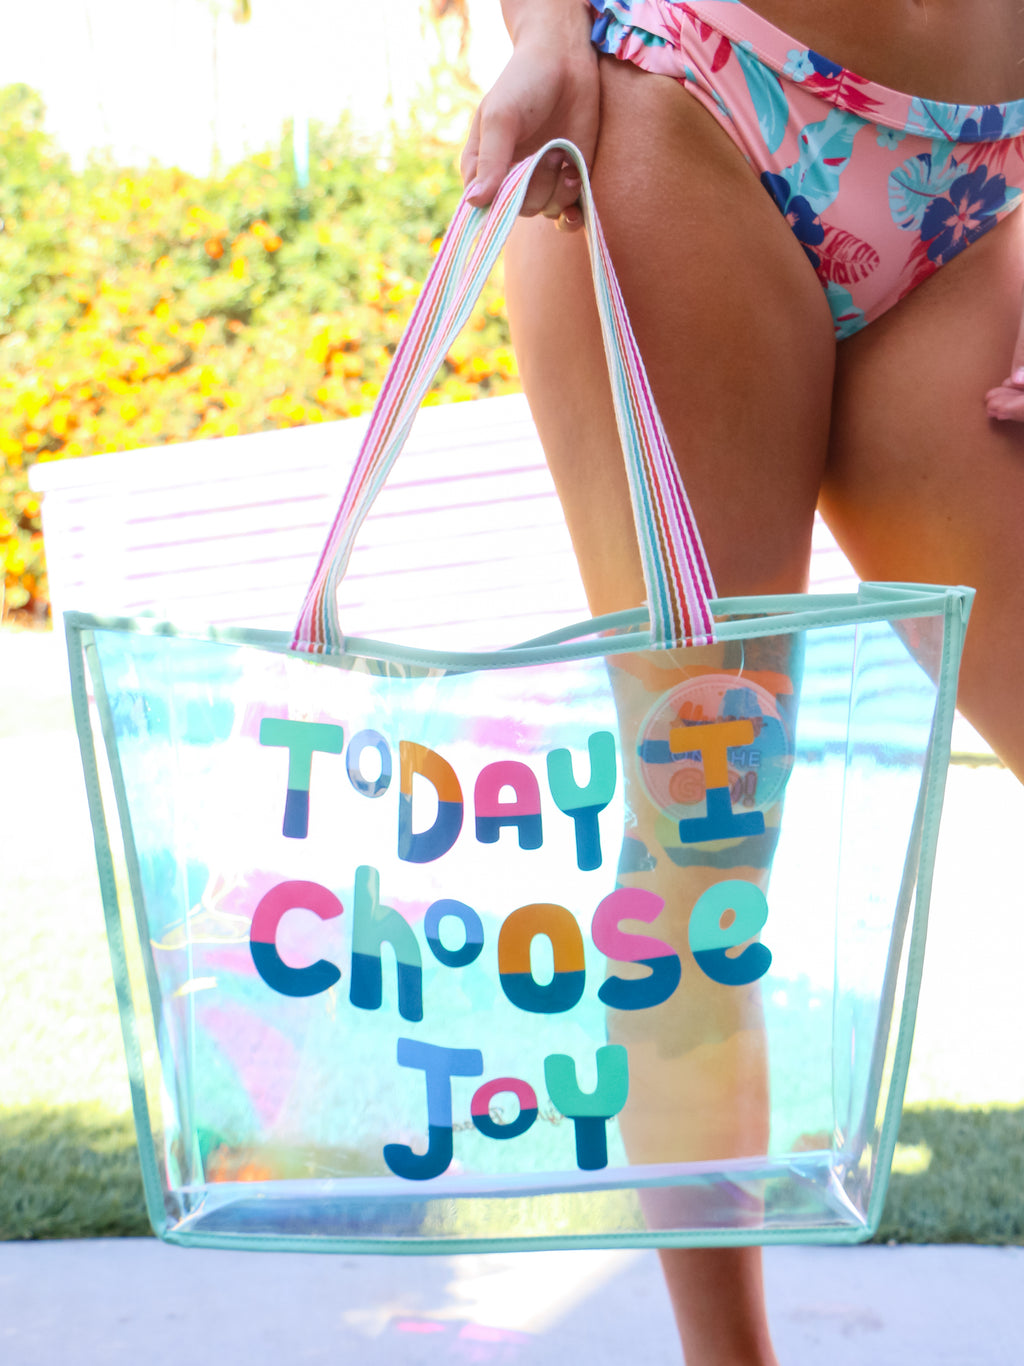 Today I Choose Joy Iridescent Tote